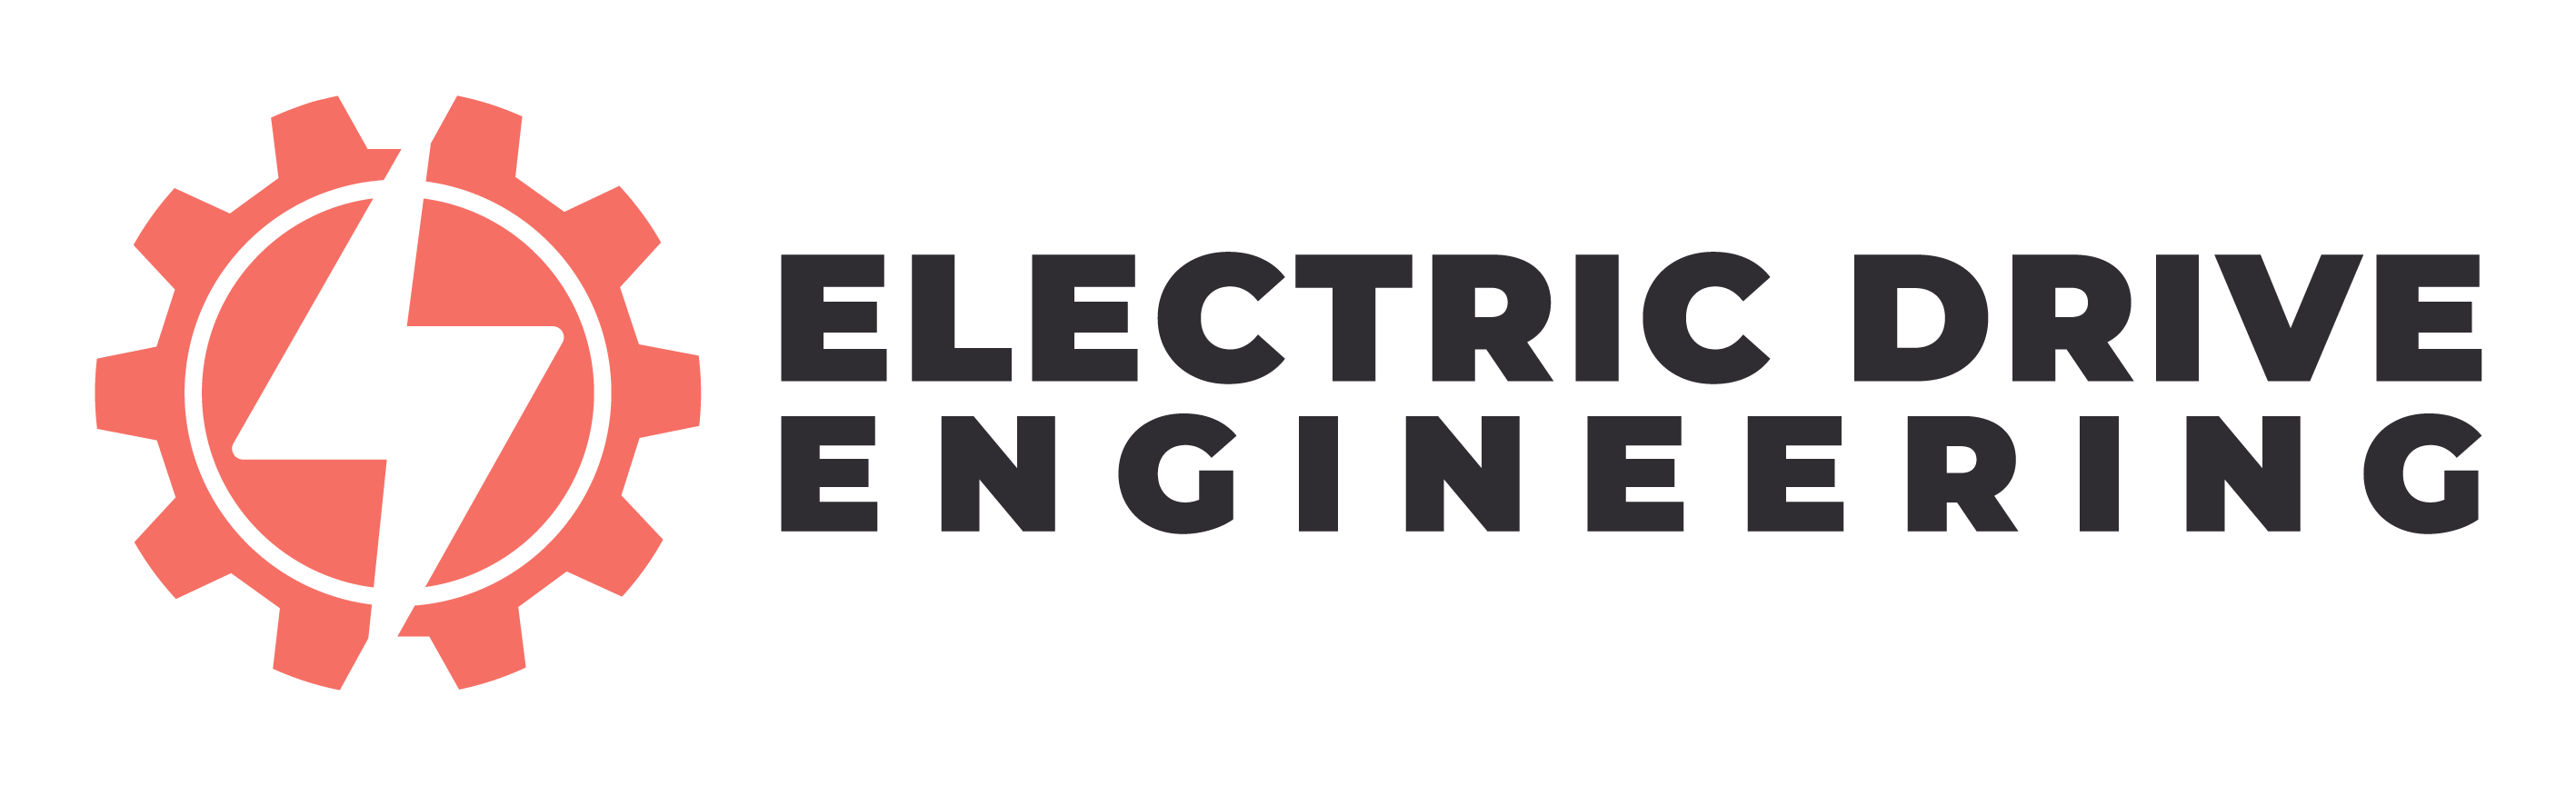 Electric Drive Engineering